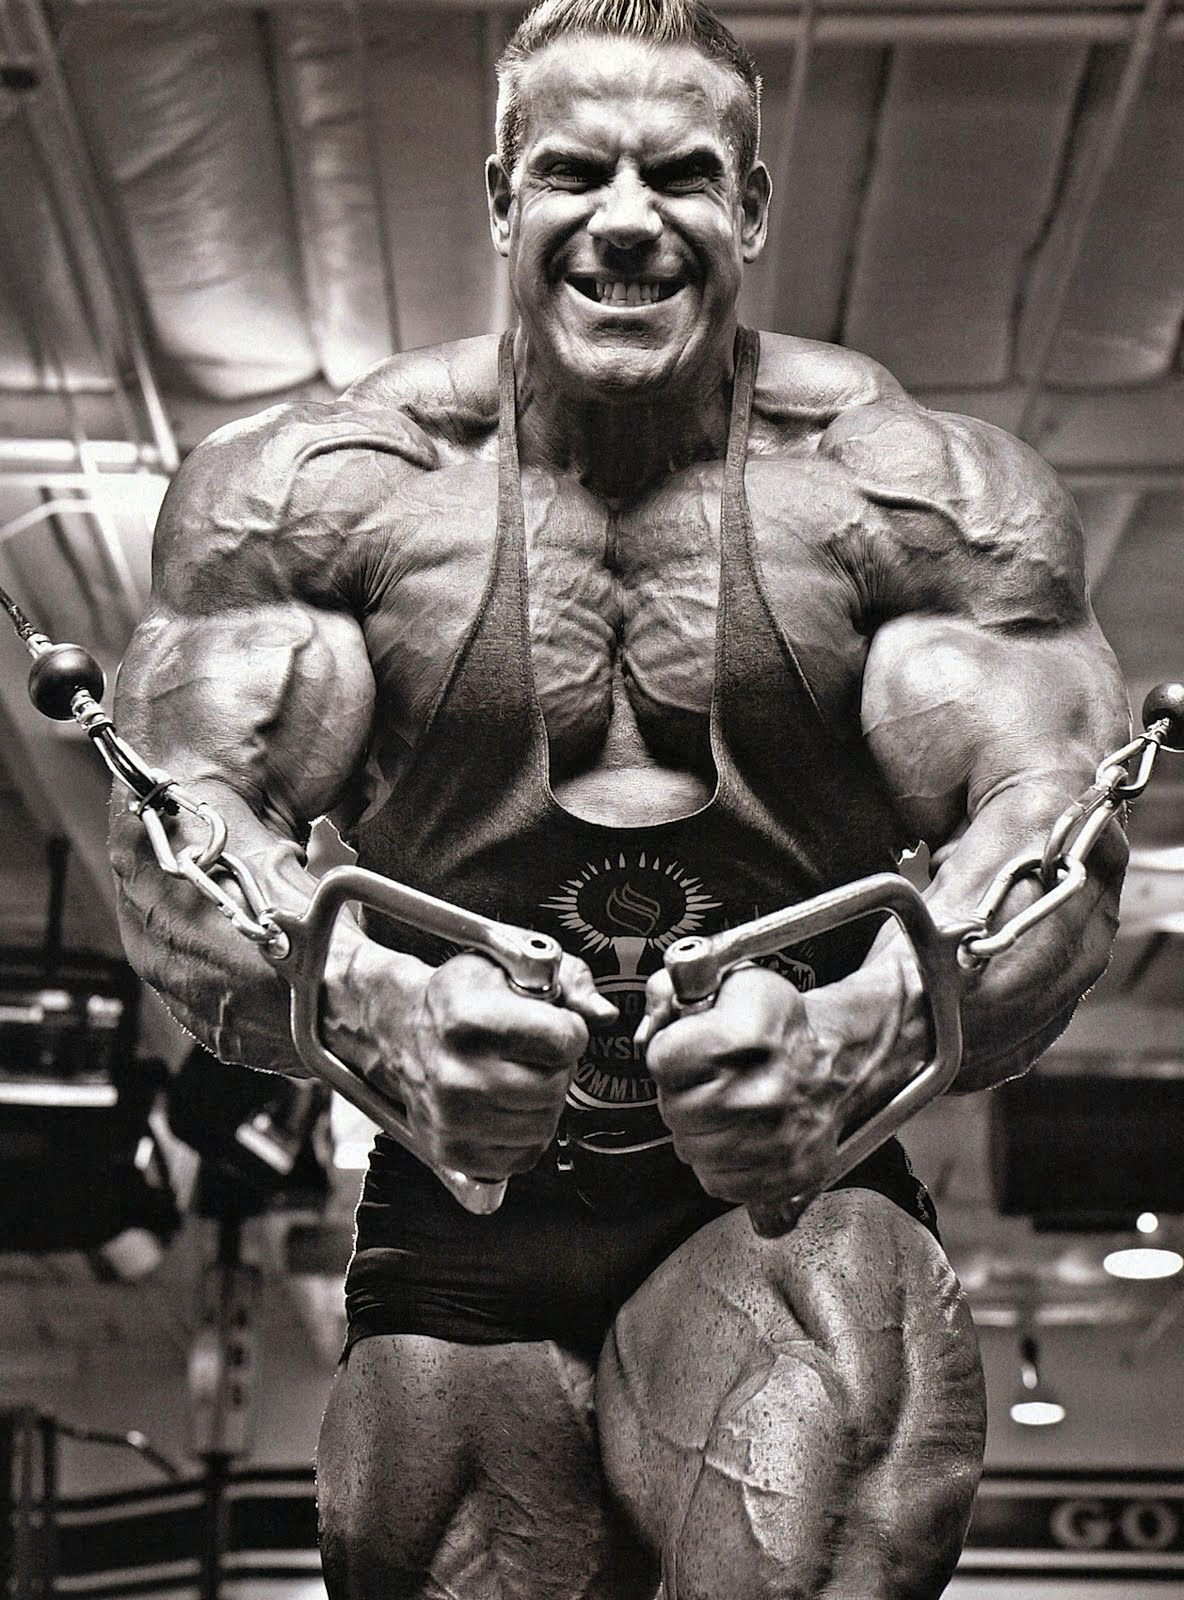 jay cutler arm workout Images and Photos   bodybuilding